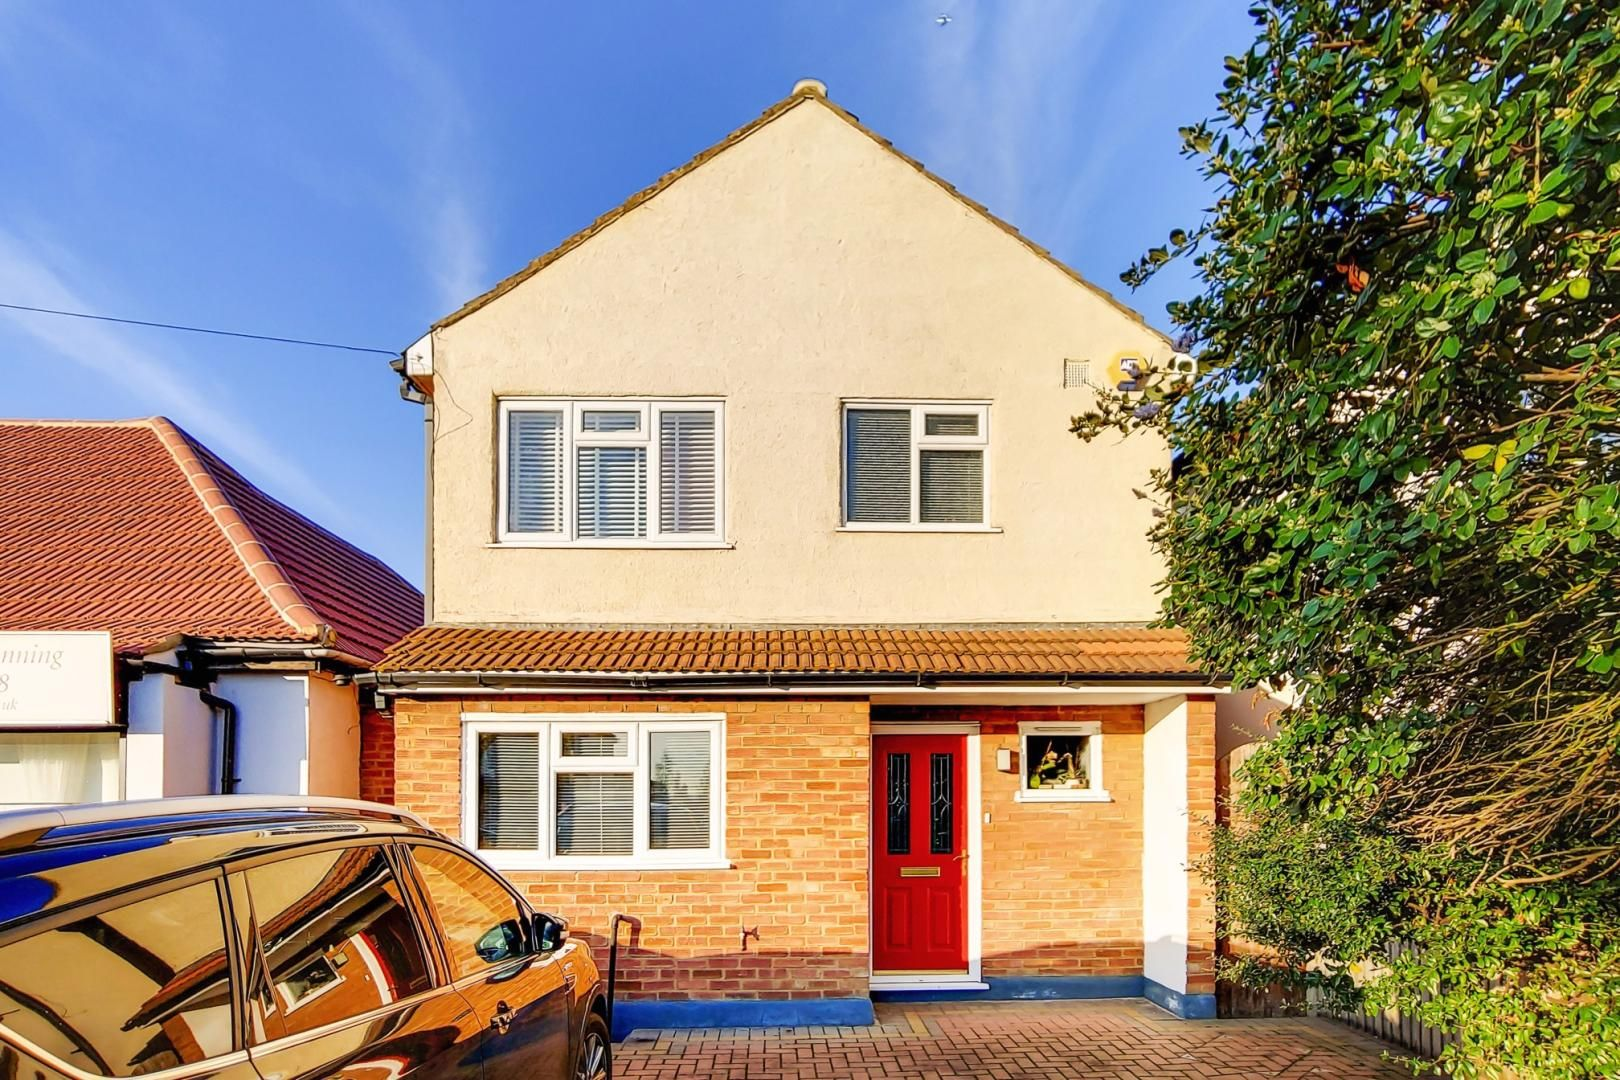 3 bed house for sale in Upminster Road North, RM13